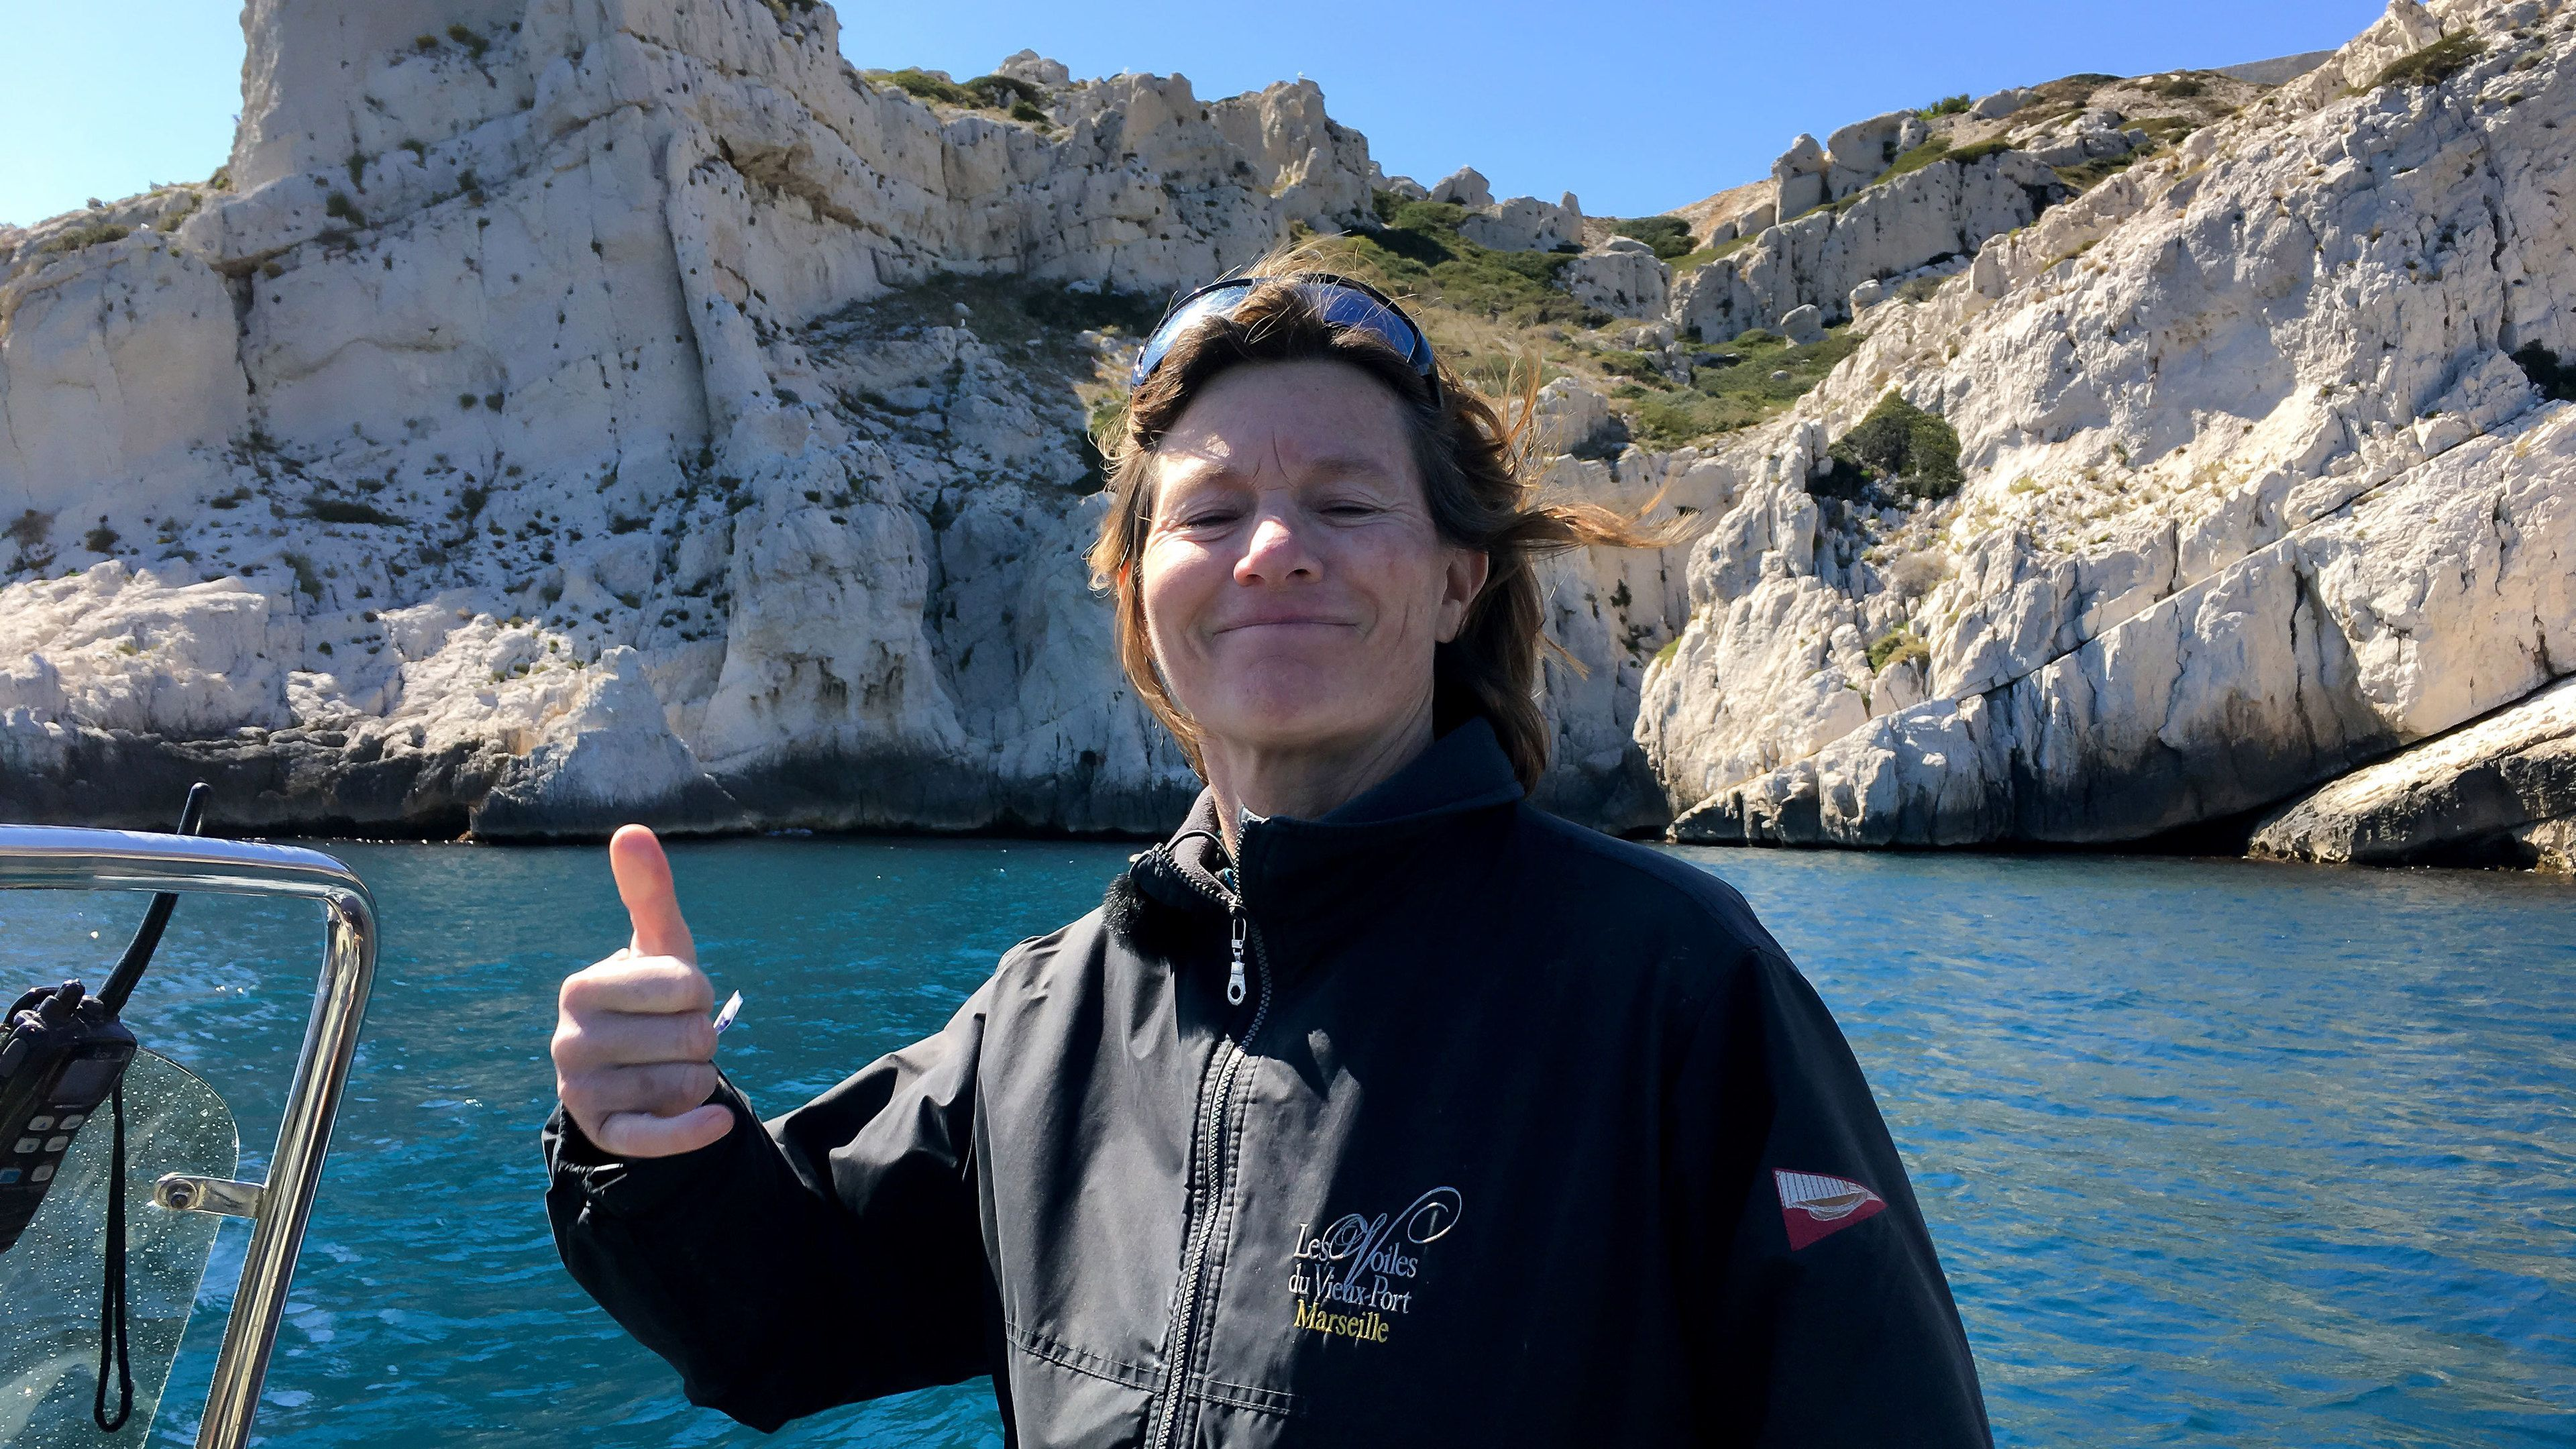 Woman giving thumbs up from a boat in the waters of the Marseille Calanques